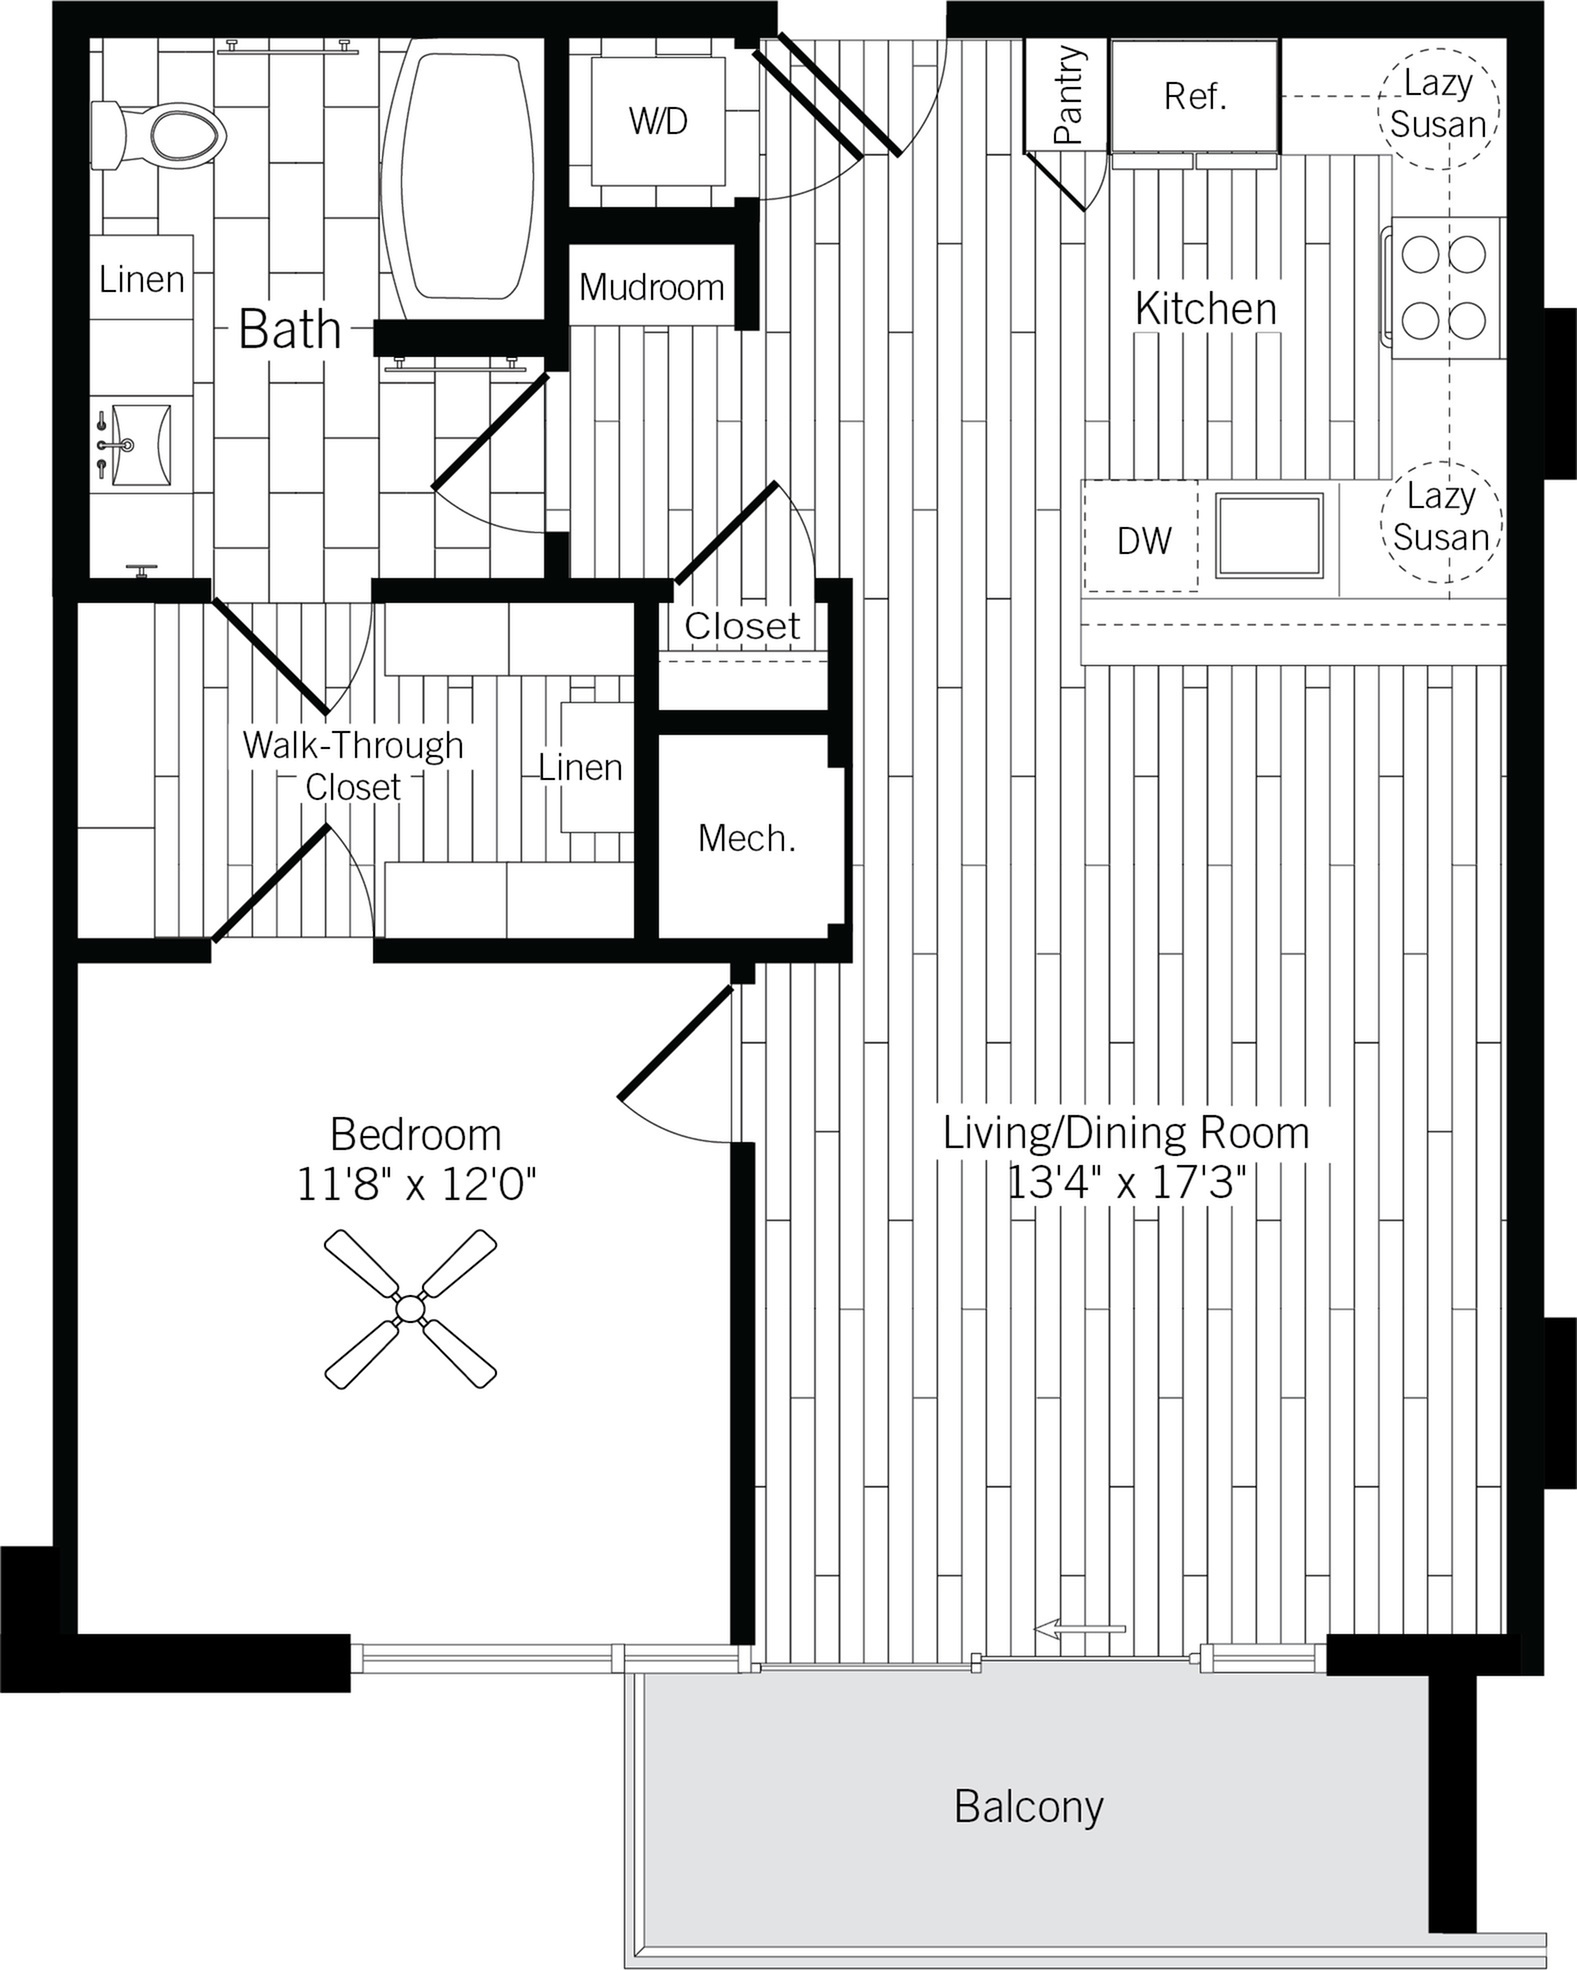 787 square foot one bedroom one bath apartment floorplan image